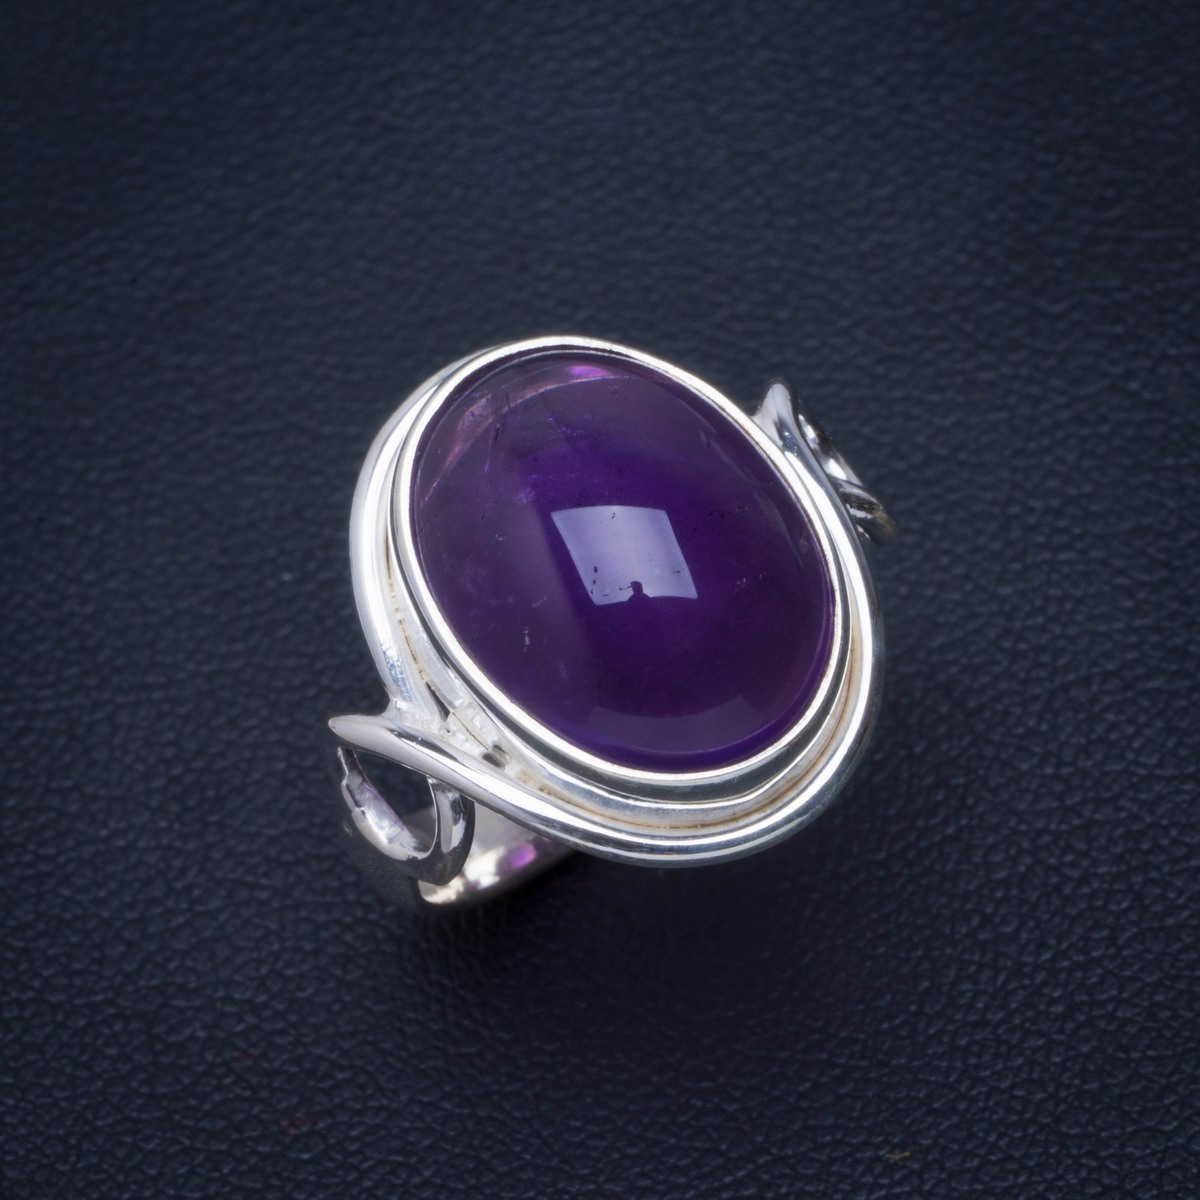 Natural Amethyst Handmade Unique 925 Sterling Silver Ring 7.75 B1191Natural Amethyst Handmade Unique 925 Sterling Silver Ring 7.75 B1191